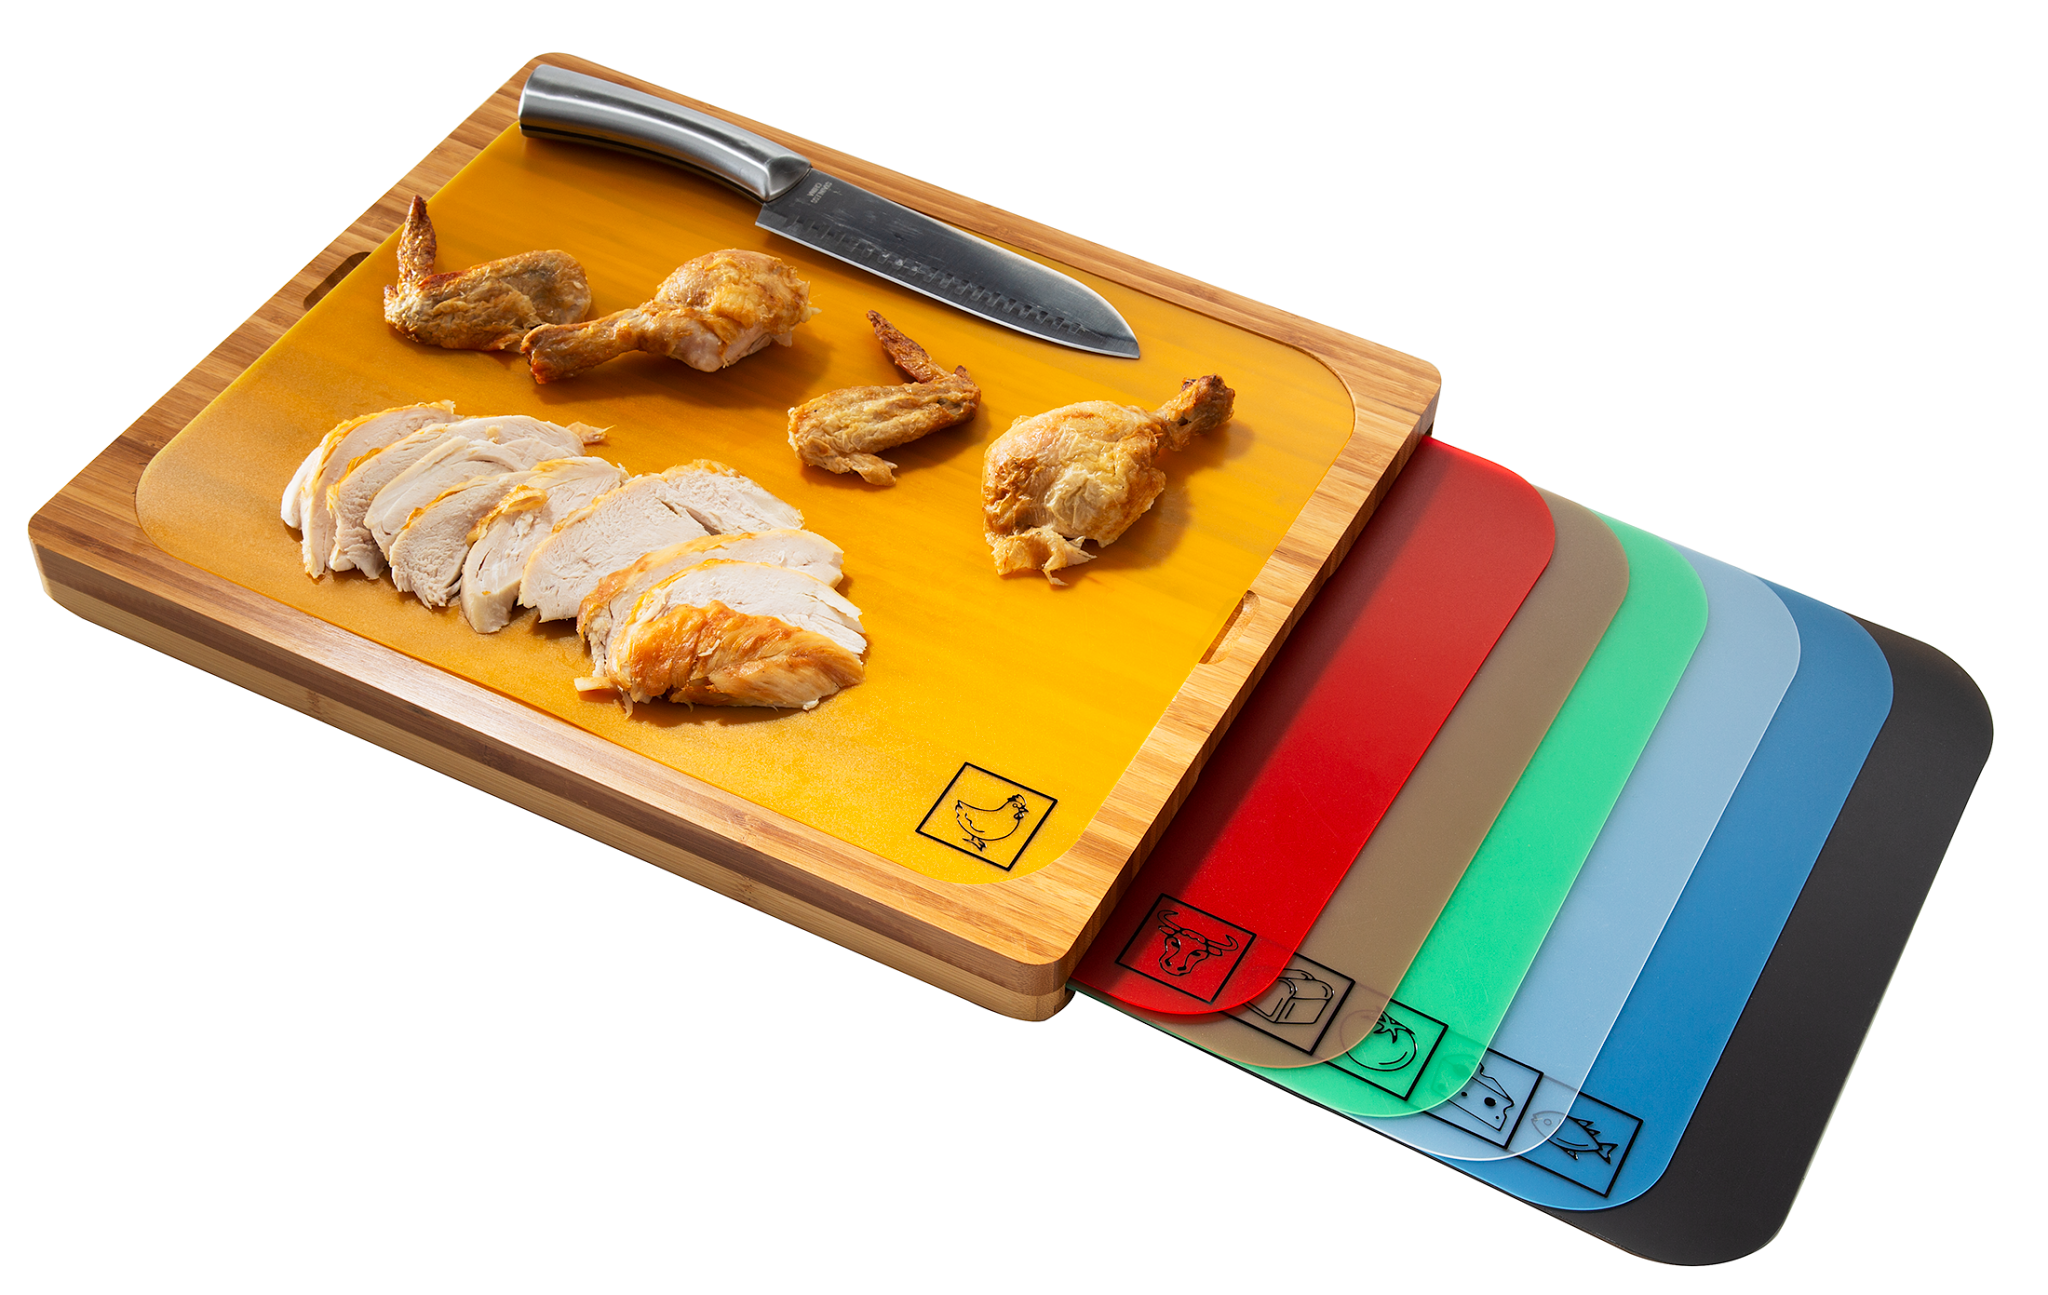 Product photo showing bamboo cutting board with 7 color-coded cutting mats, with the poultry mat being used on the bamboo cutting board to slice chicken